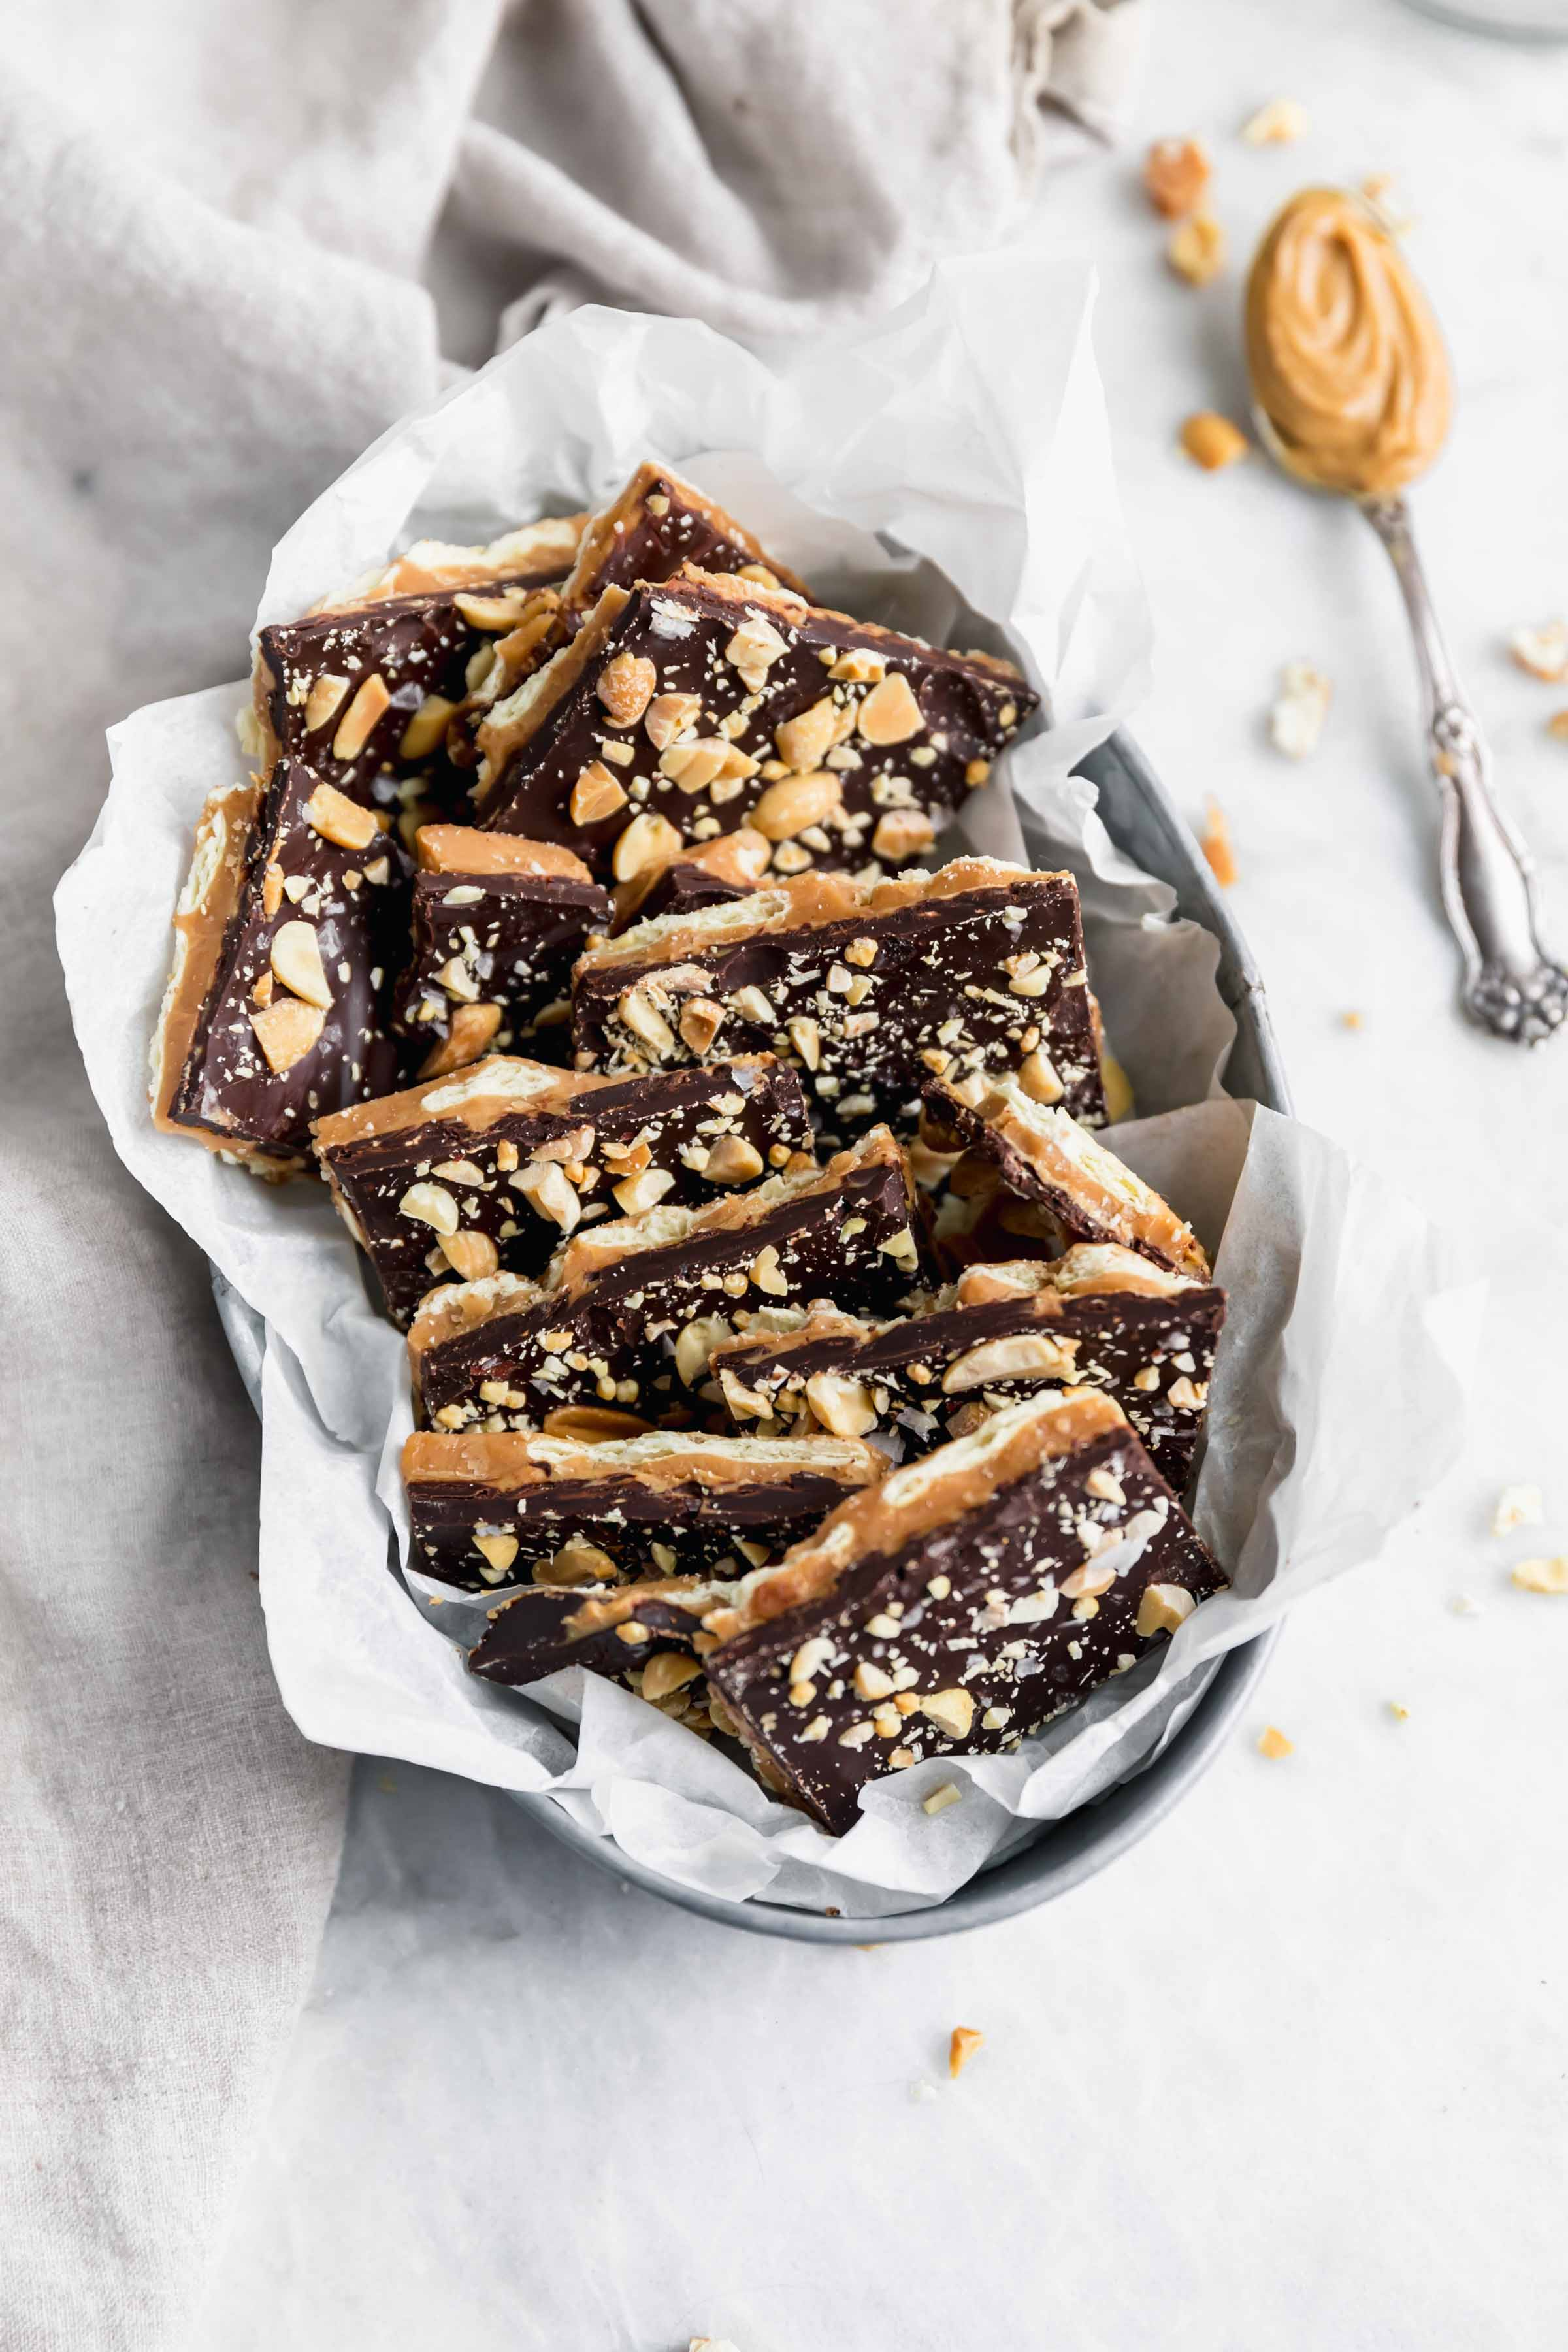 A crowd-pleasing sweet, salty, crunchy, and smooth Peanut Butter Toffee bark made entirely with ingredients you probably already have in your pantry! Hello, sweet thing!